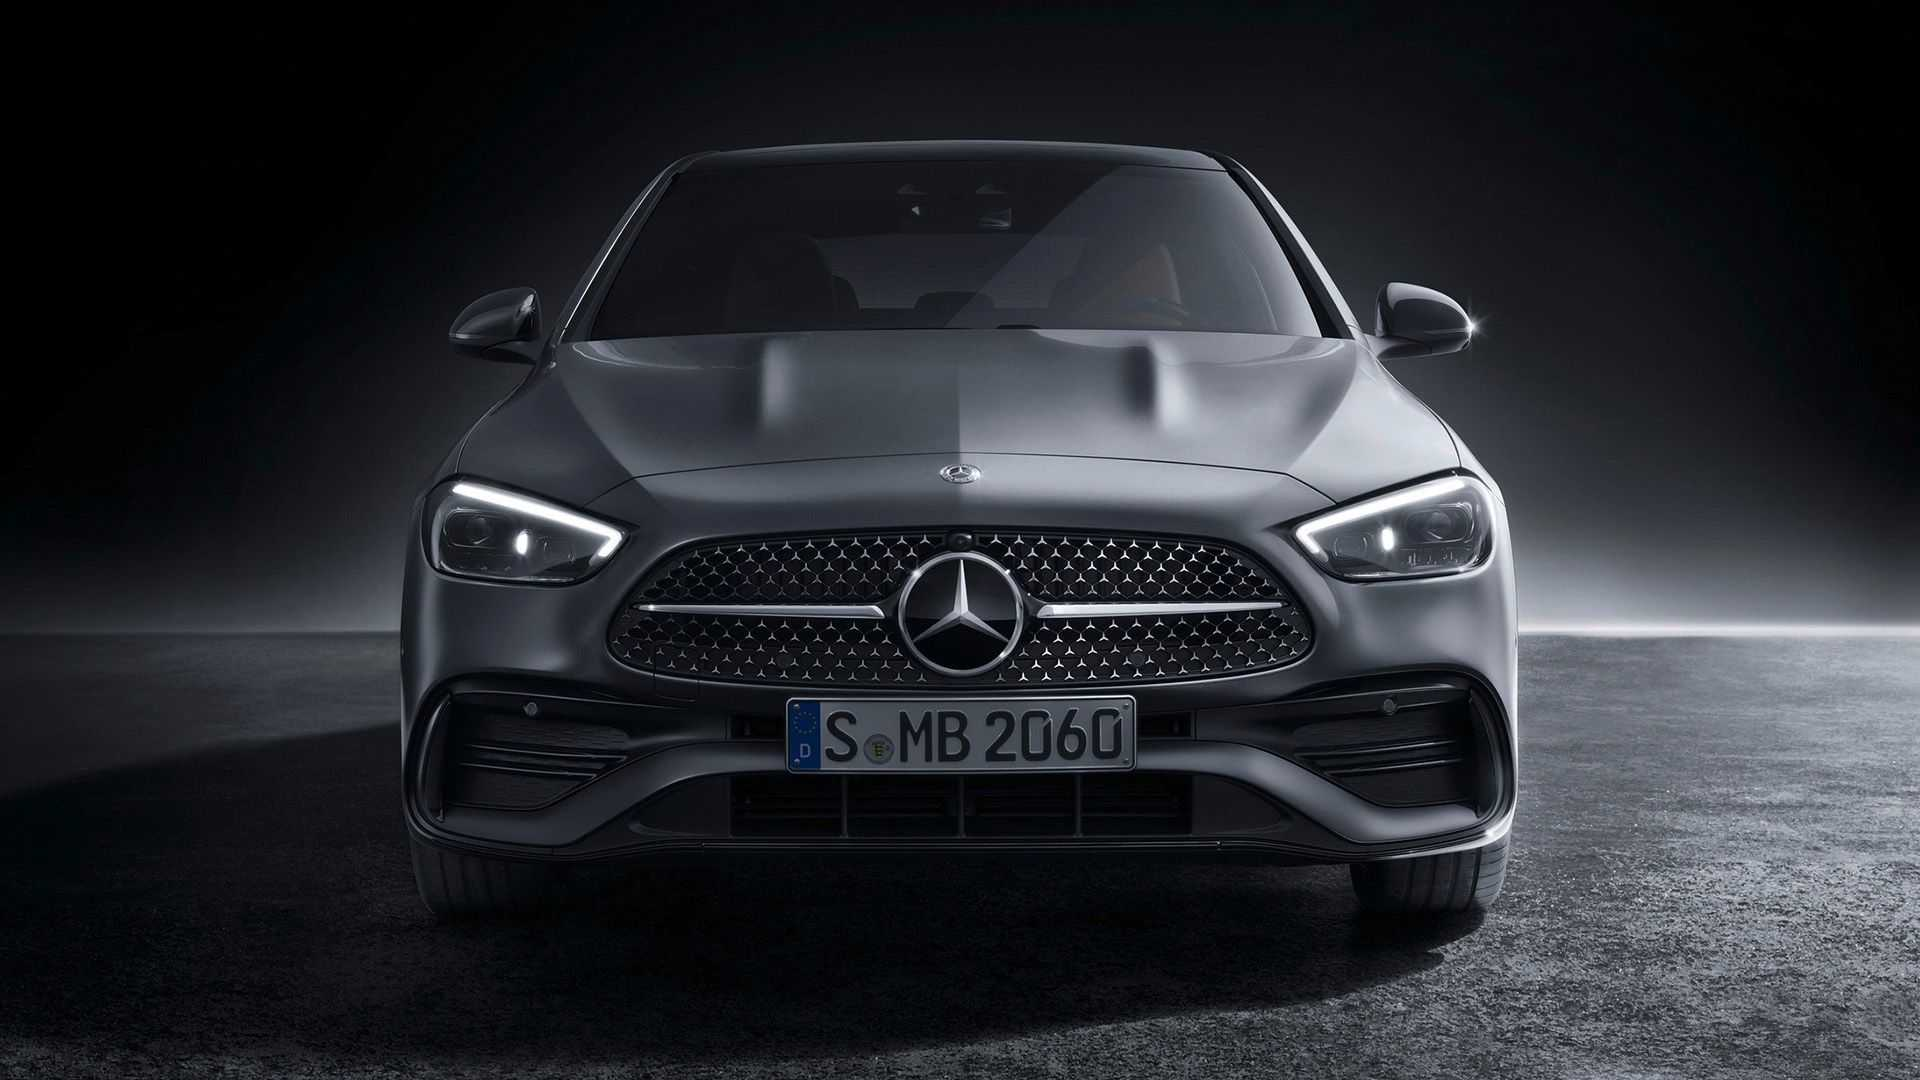 Following the debut of the next-gen Mercedes-Benz C-Class earlier this week, media have received unofficial reports that a battery variant of the saloon was underway – and it has nothing to do with the EQC model.